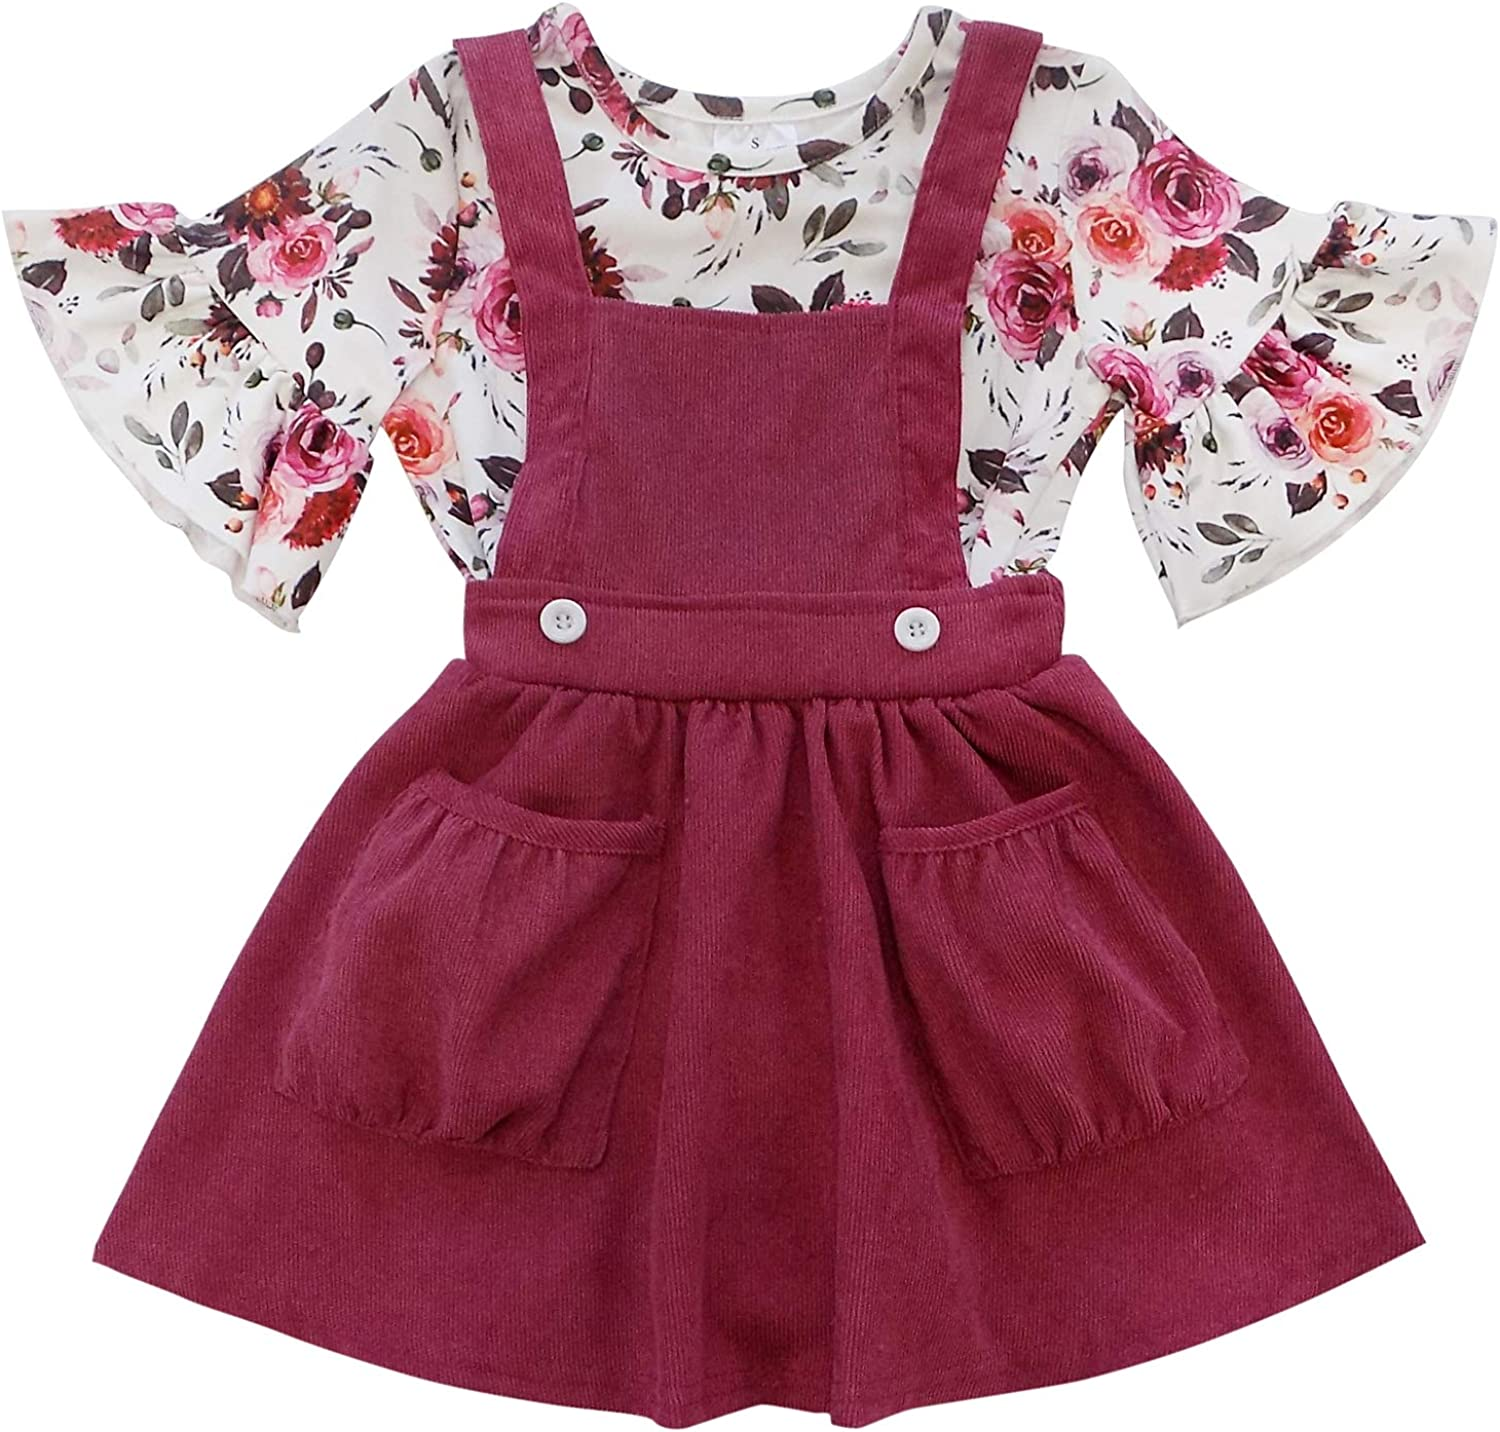 Overalls Skirt Cute Boutique Clothing Set Burgundy Blossoms So Sydney Girls Corduroy Jumper Outfit